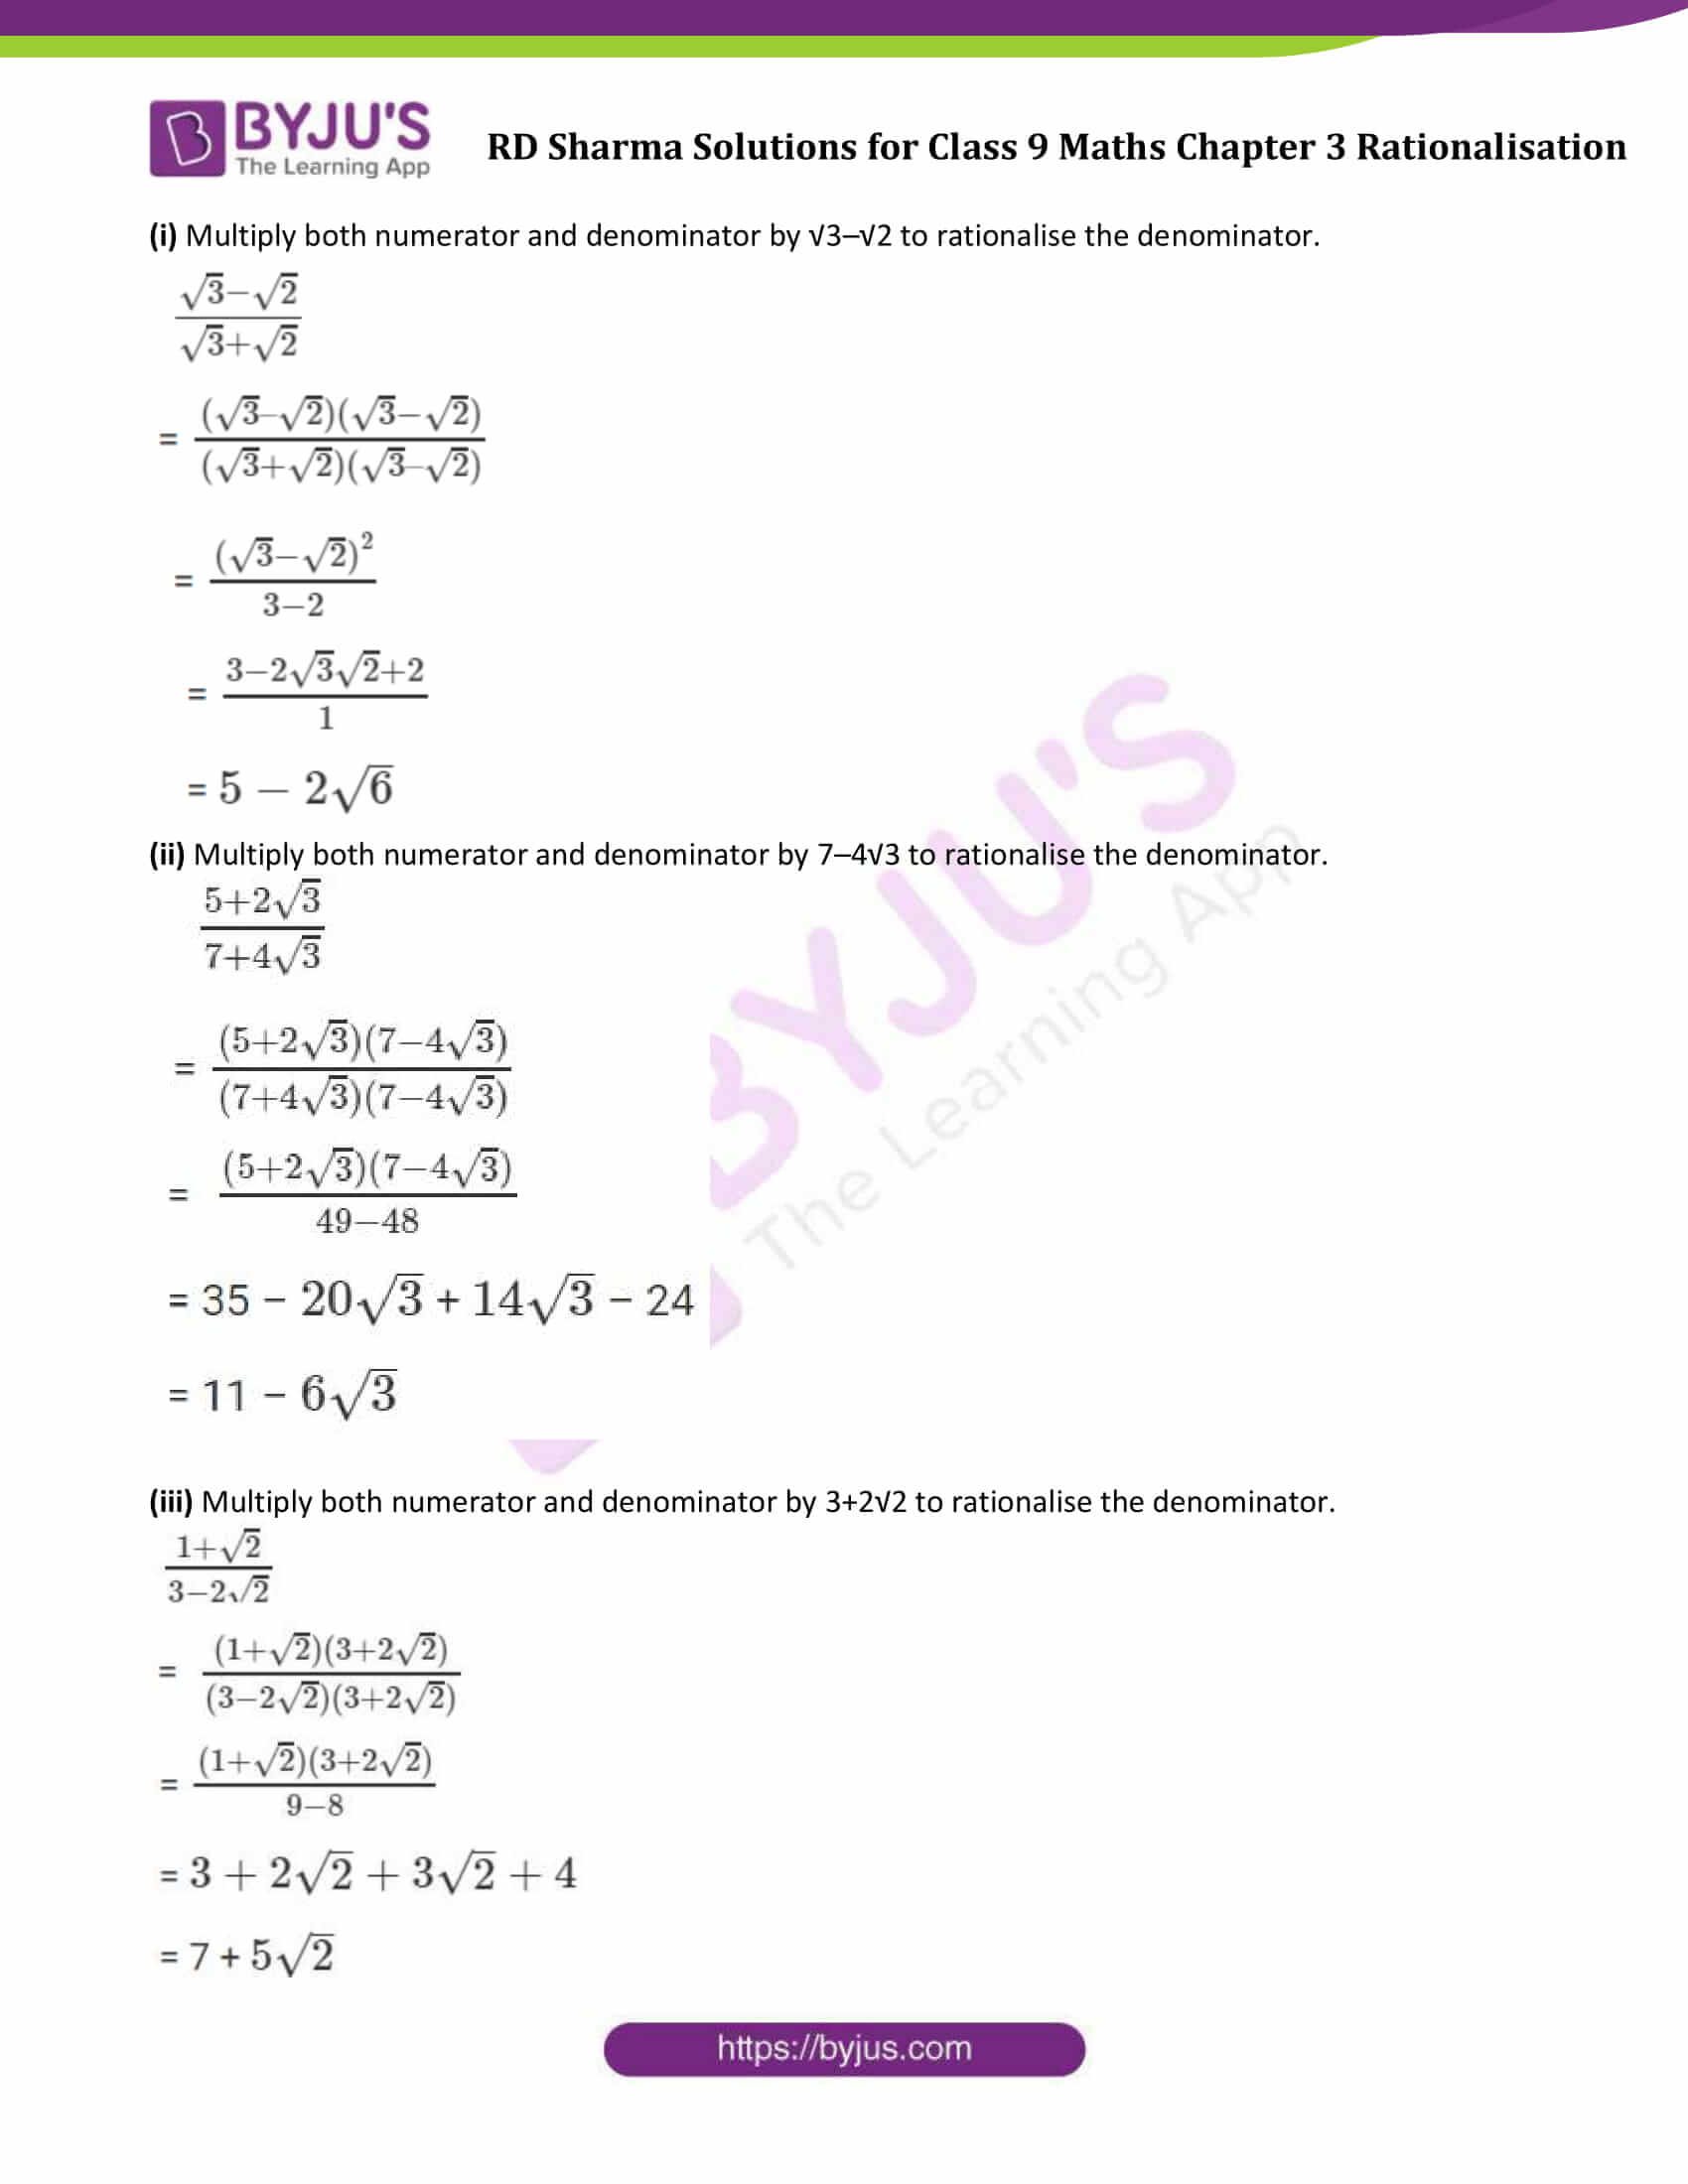 RD Sharma Solution class 9 Maths Chapter 3 Rationalisation 11